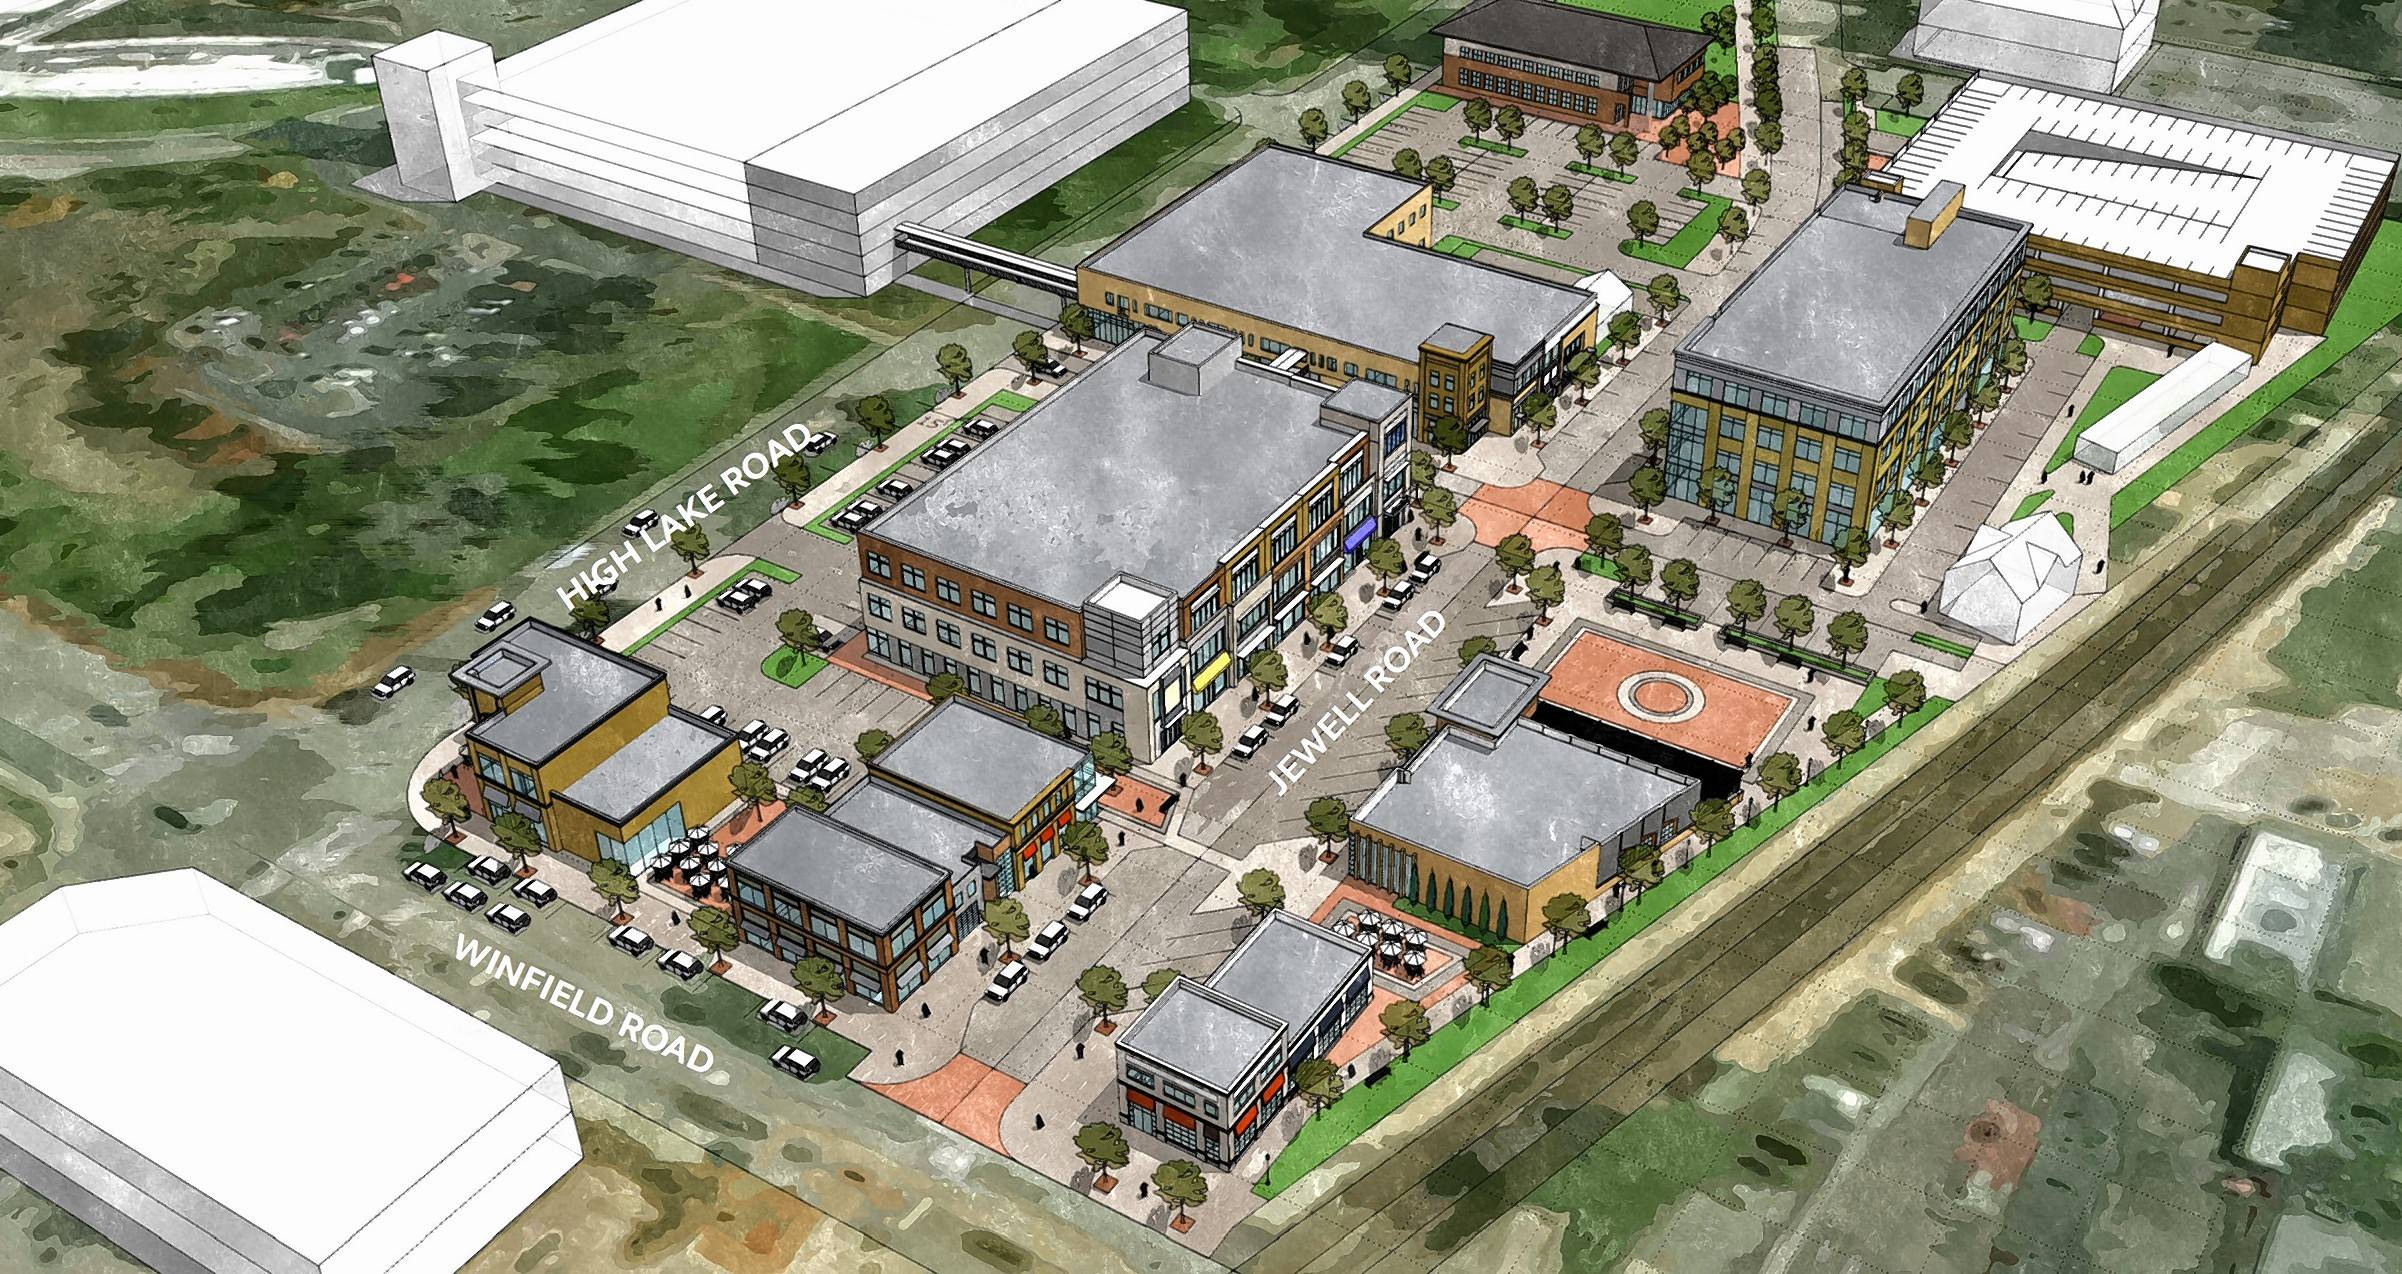 Winfield, Central DuPage Hospital share vision for massive Town Center redevelopment